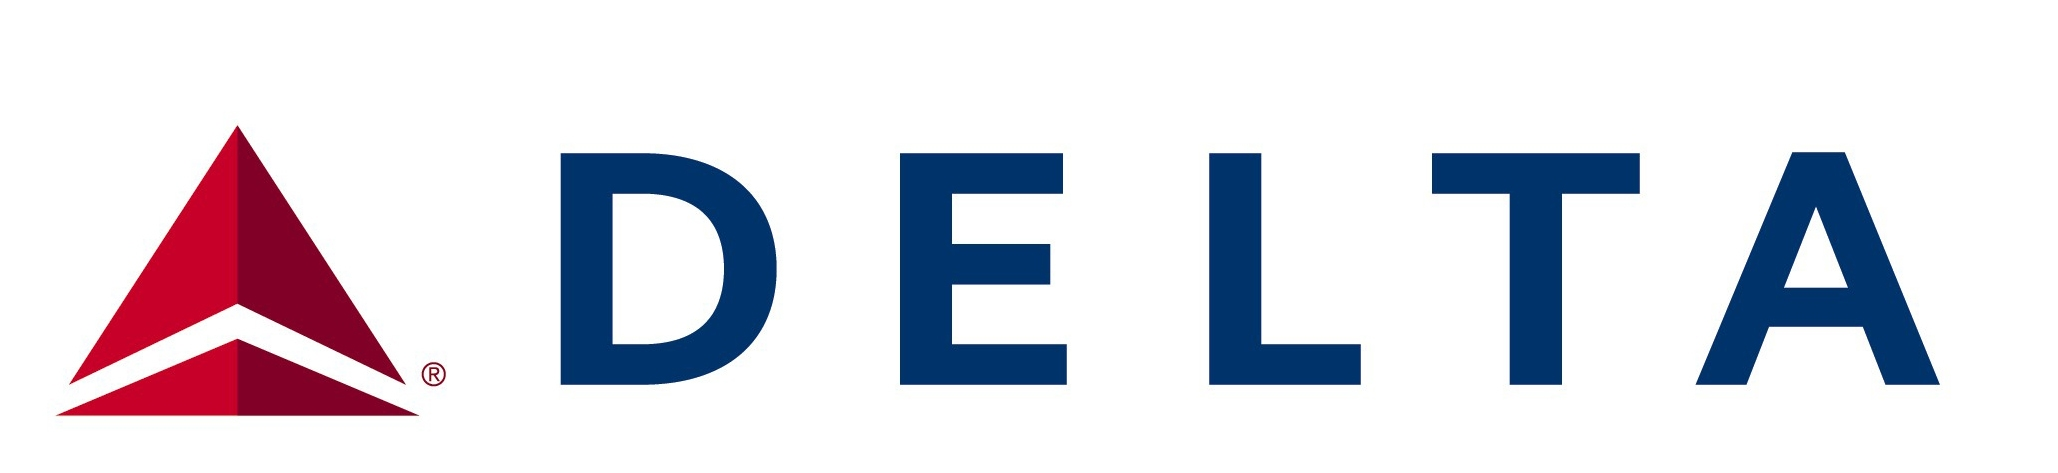 Logo_DeltaAirlines-Long.jpg